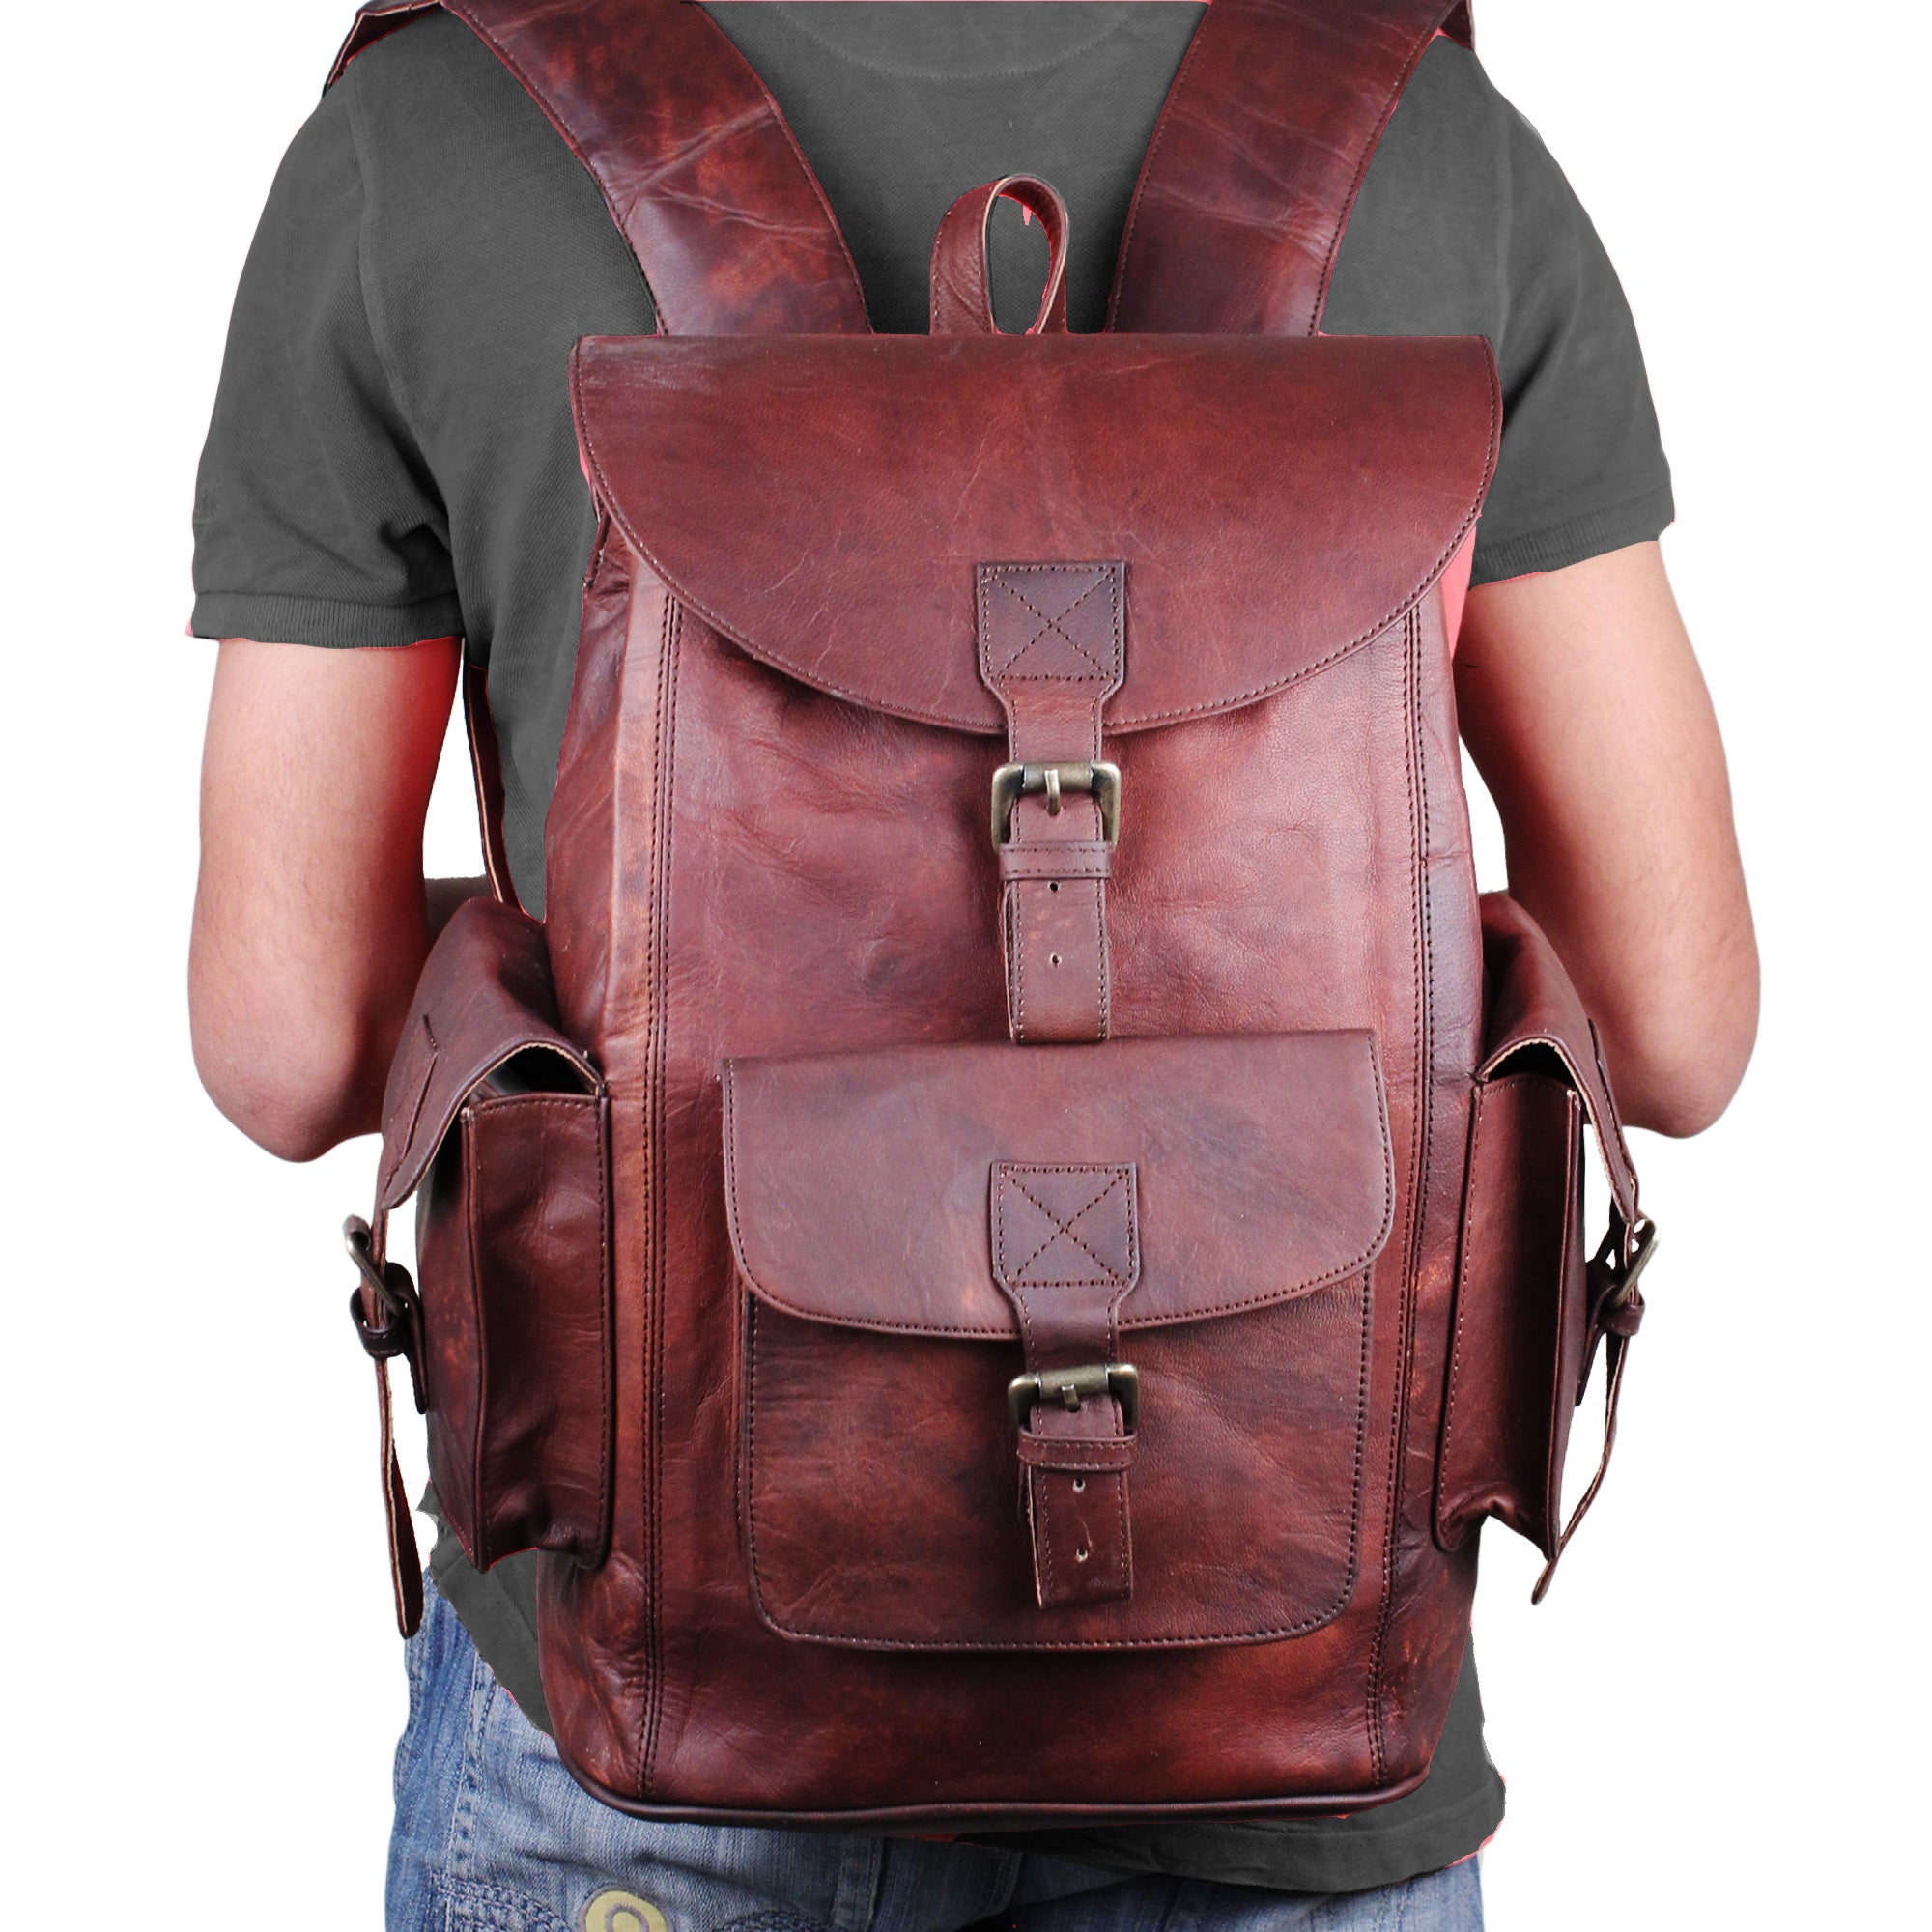 Large Leather Messenger Backpack with multiple Pockets and Padded Strap